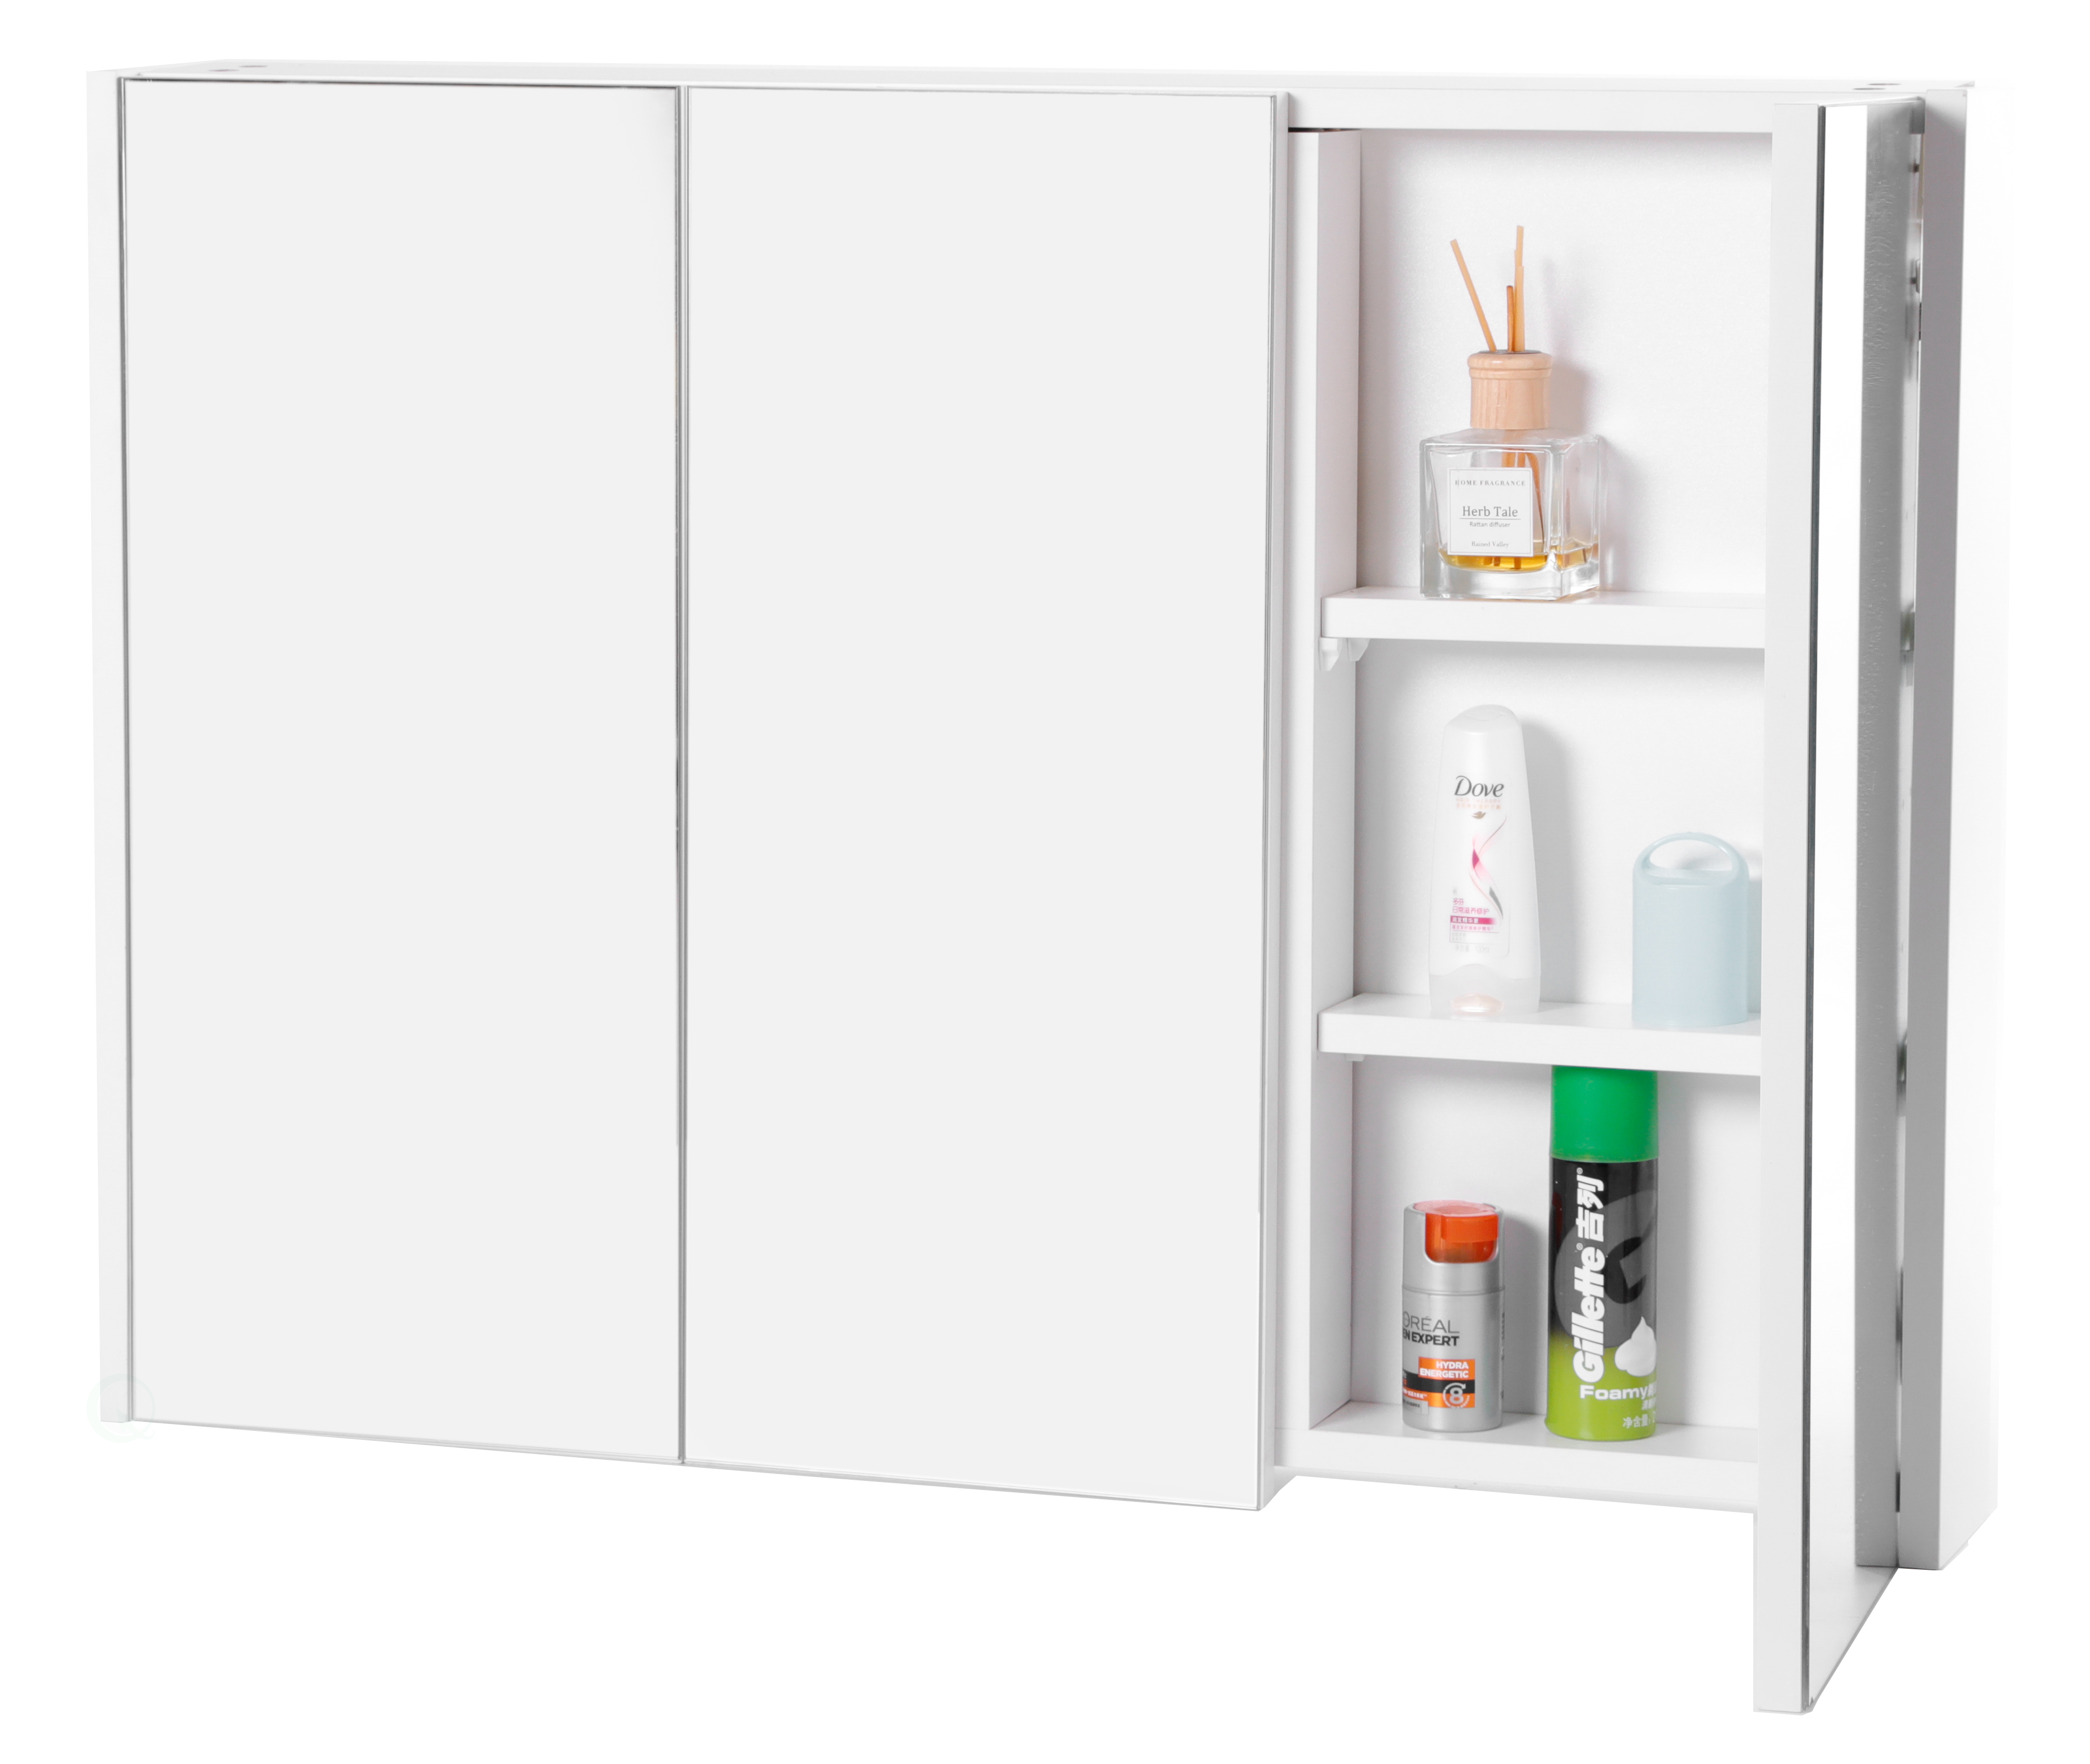 Details About 3 Shelves White Wall Mounted Bathroom Powder Room Mirrored Door Vanity Cabinet